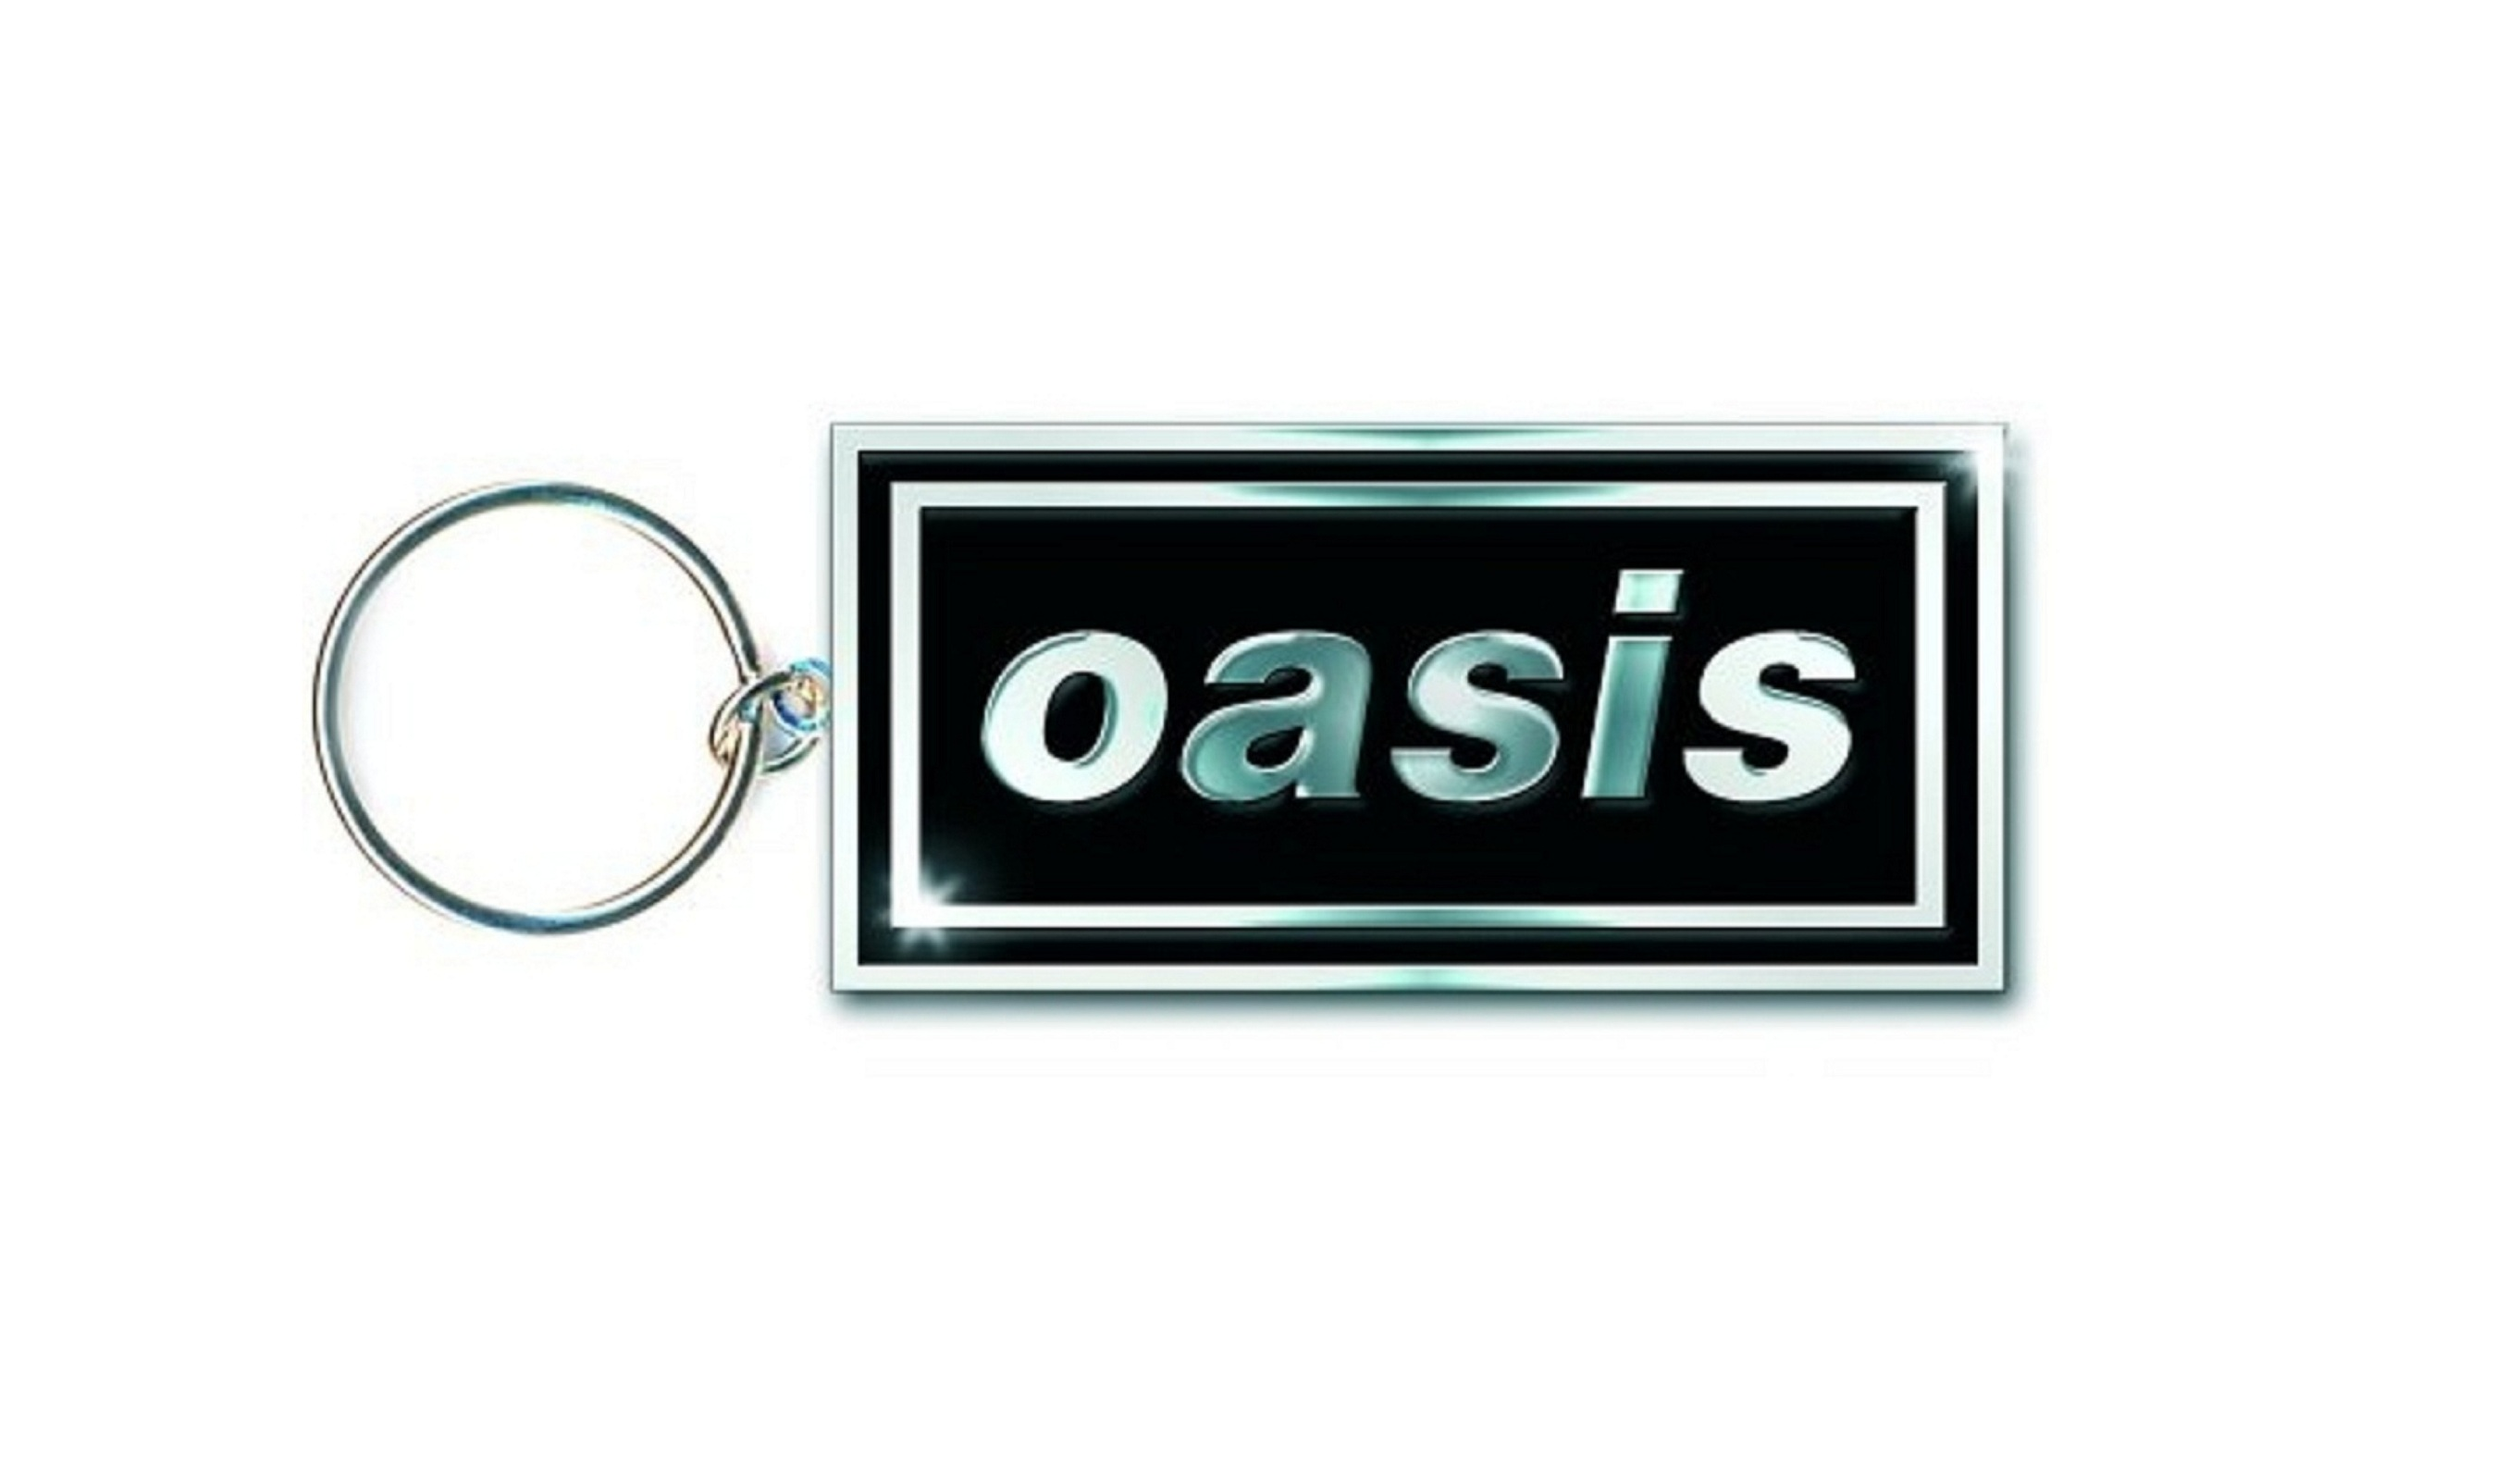 oasis keyring keychain band logo new official metal one